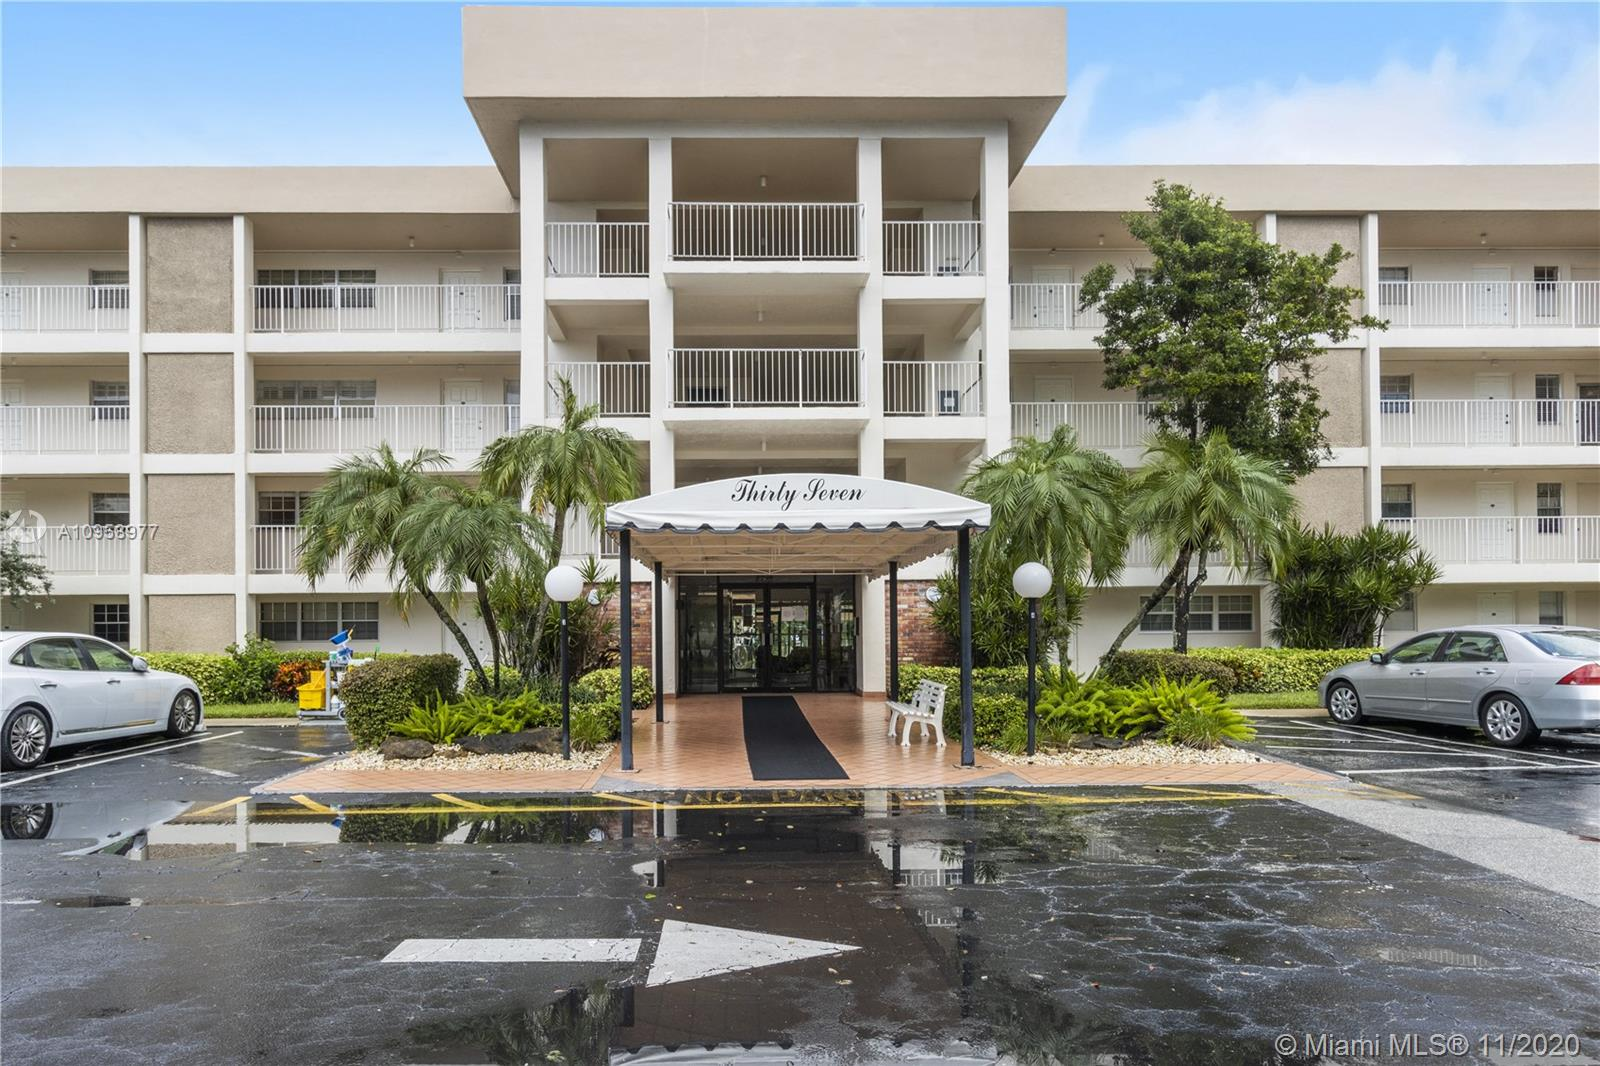 Beautiful and charming describes this 2 bedroom/2 bath condo, located in the most desirable community of Palm Aire Country Club ! Overlooking wonderful Golf Course view! Completely renovated with porcelain tile throughout. This unit features large eat-in kitchen with breakfast bar and recessed lighting, wide screen balcony, walk-in closet in master bedroom and custom made window treatments. Well located in the heart of Pompano Beach! Close to Palm-Aire recreational area featuring tennis courts, volleyball, basketball & more. Conveniently located close to famous Isles Casino Racing Pompano Park, golf courses , restaurants, shopping and all major highways.